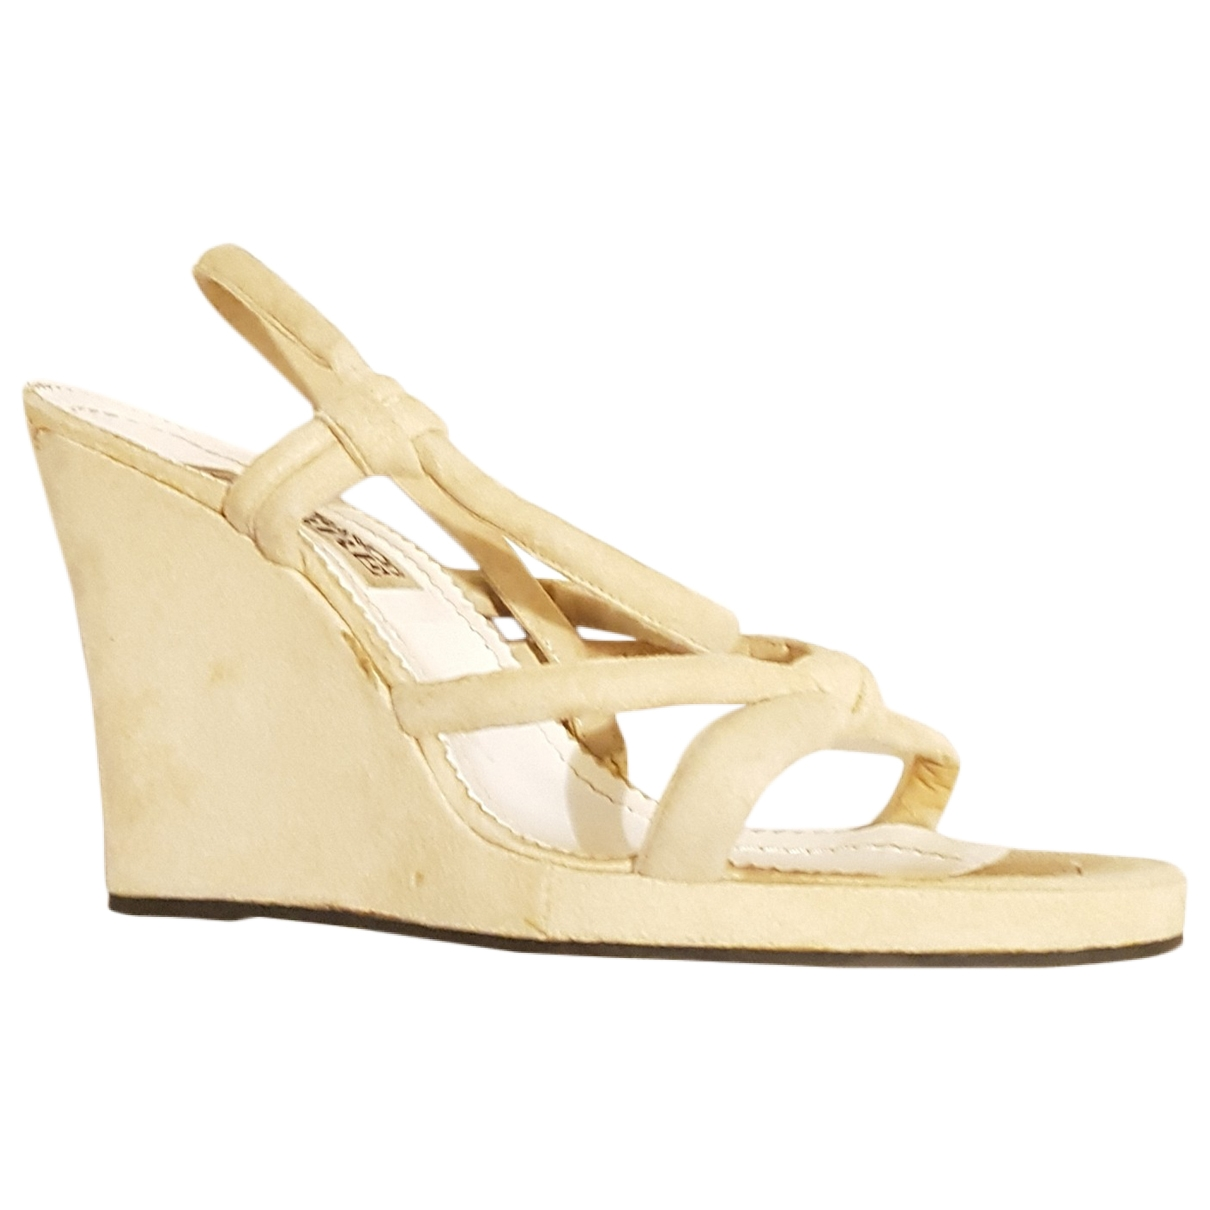 Gianfranco Ferr?? \N Beige Suede Sandals for Women 40 EU